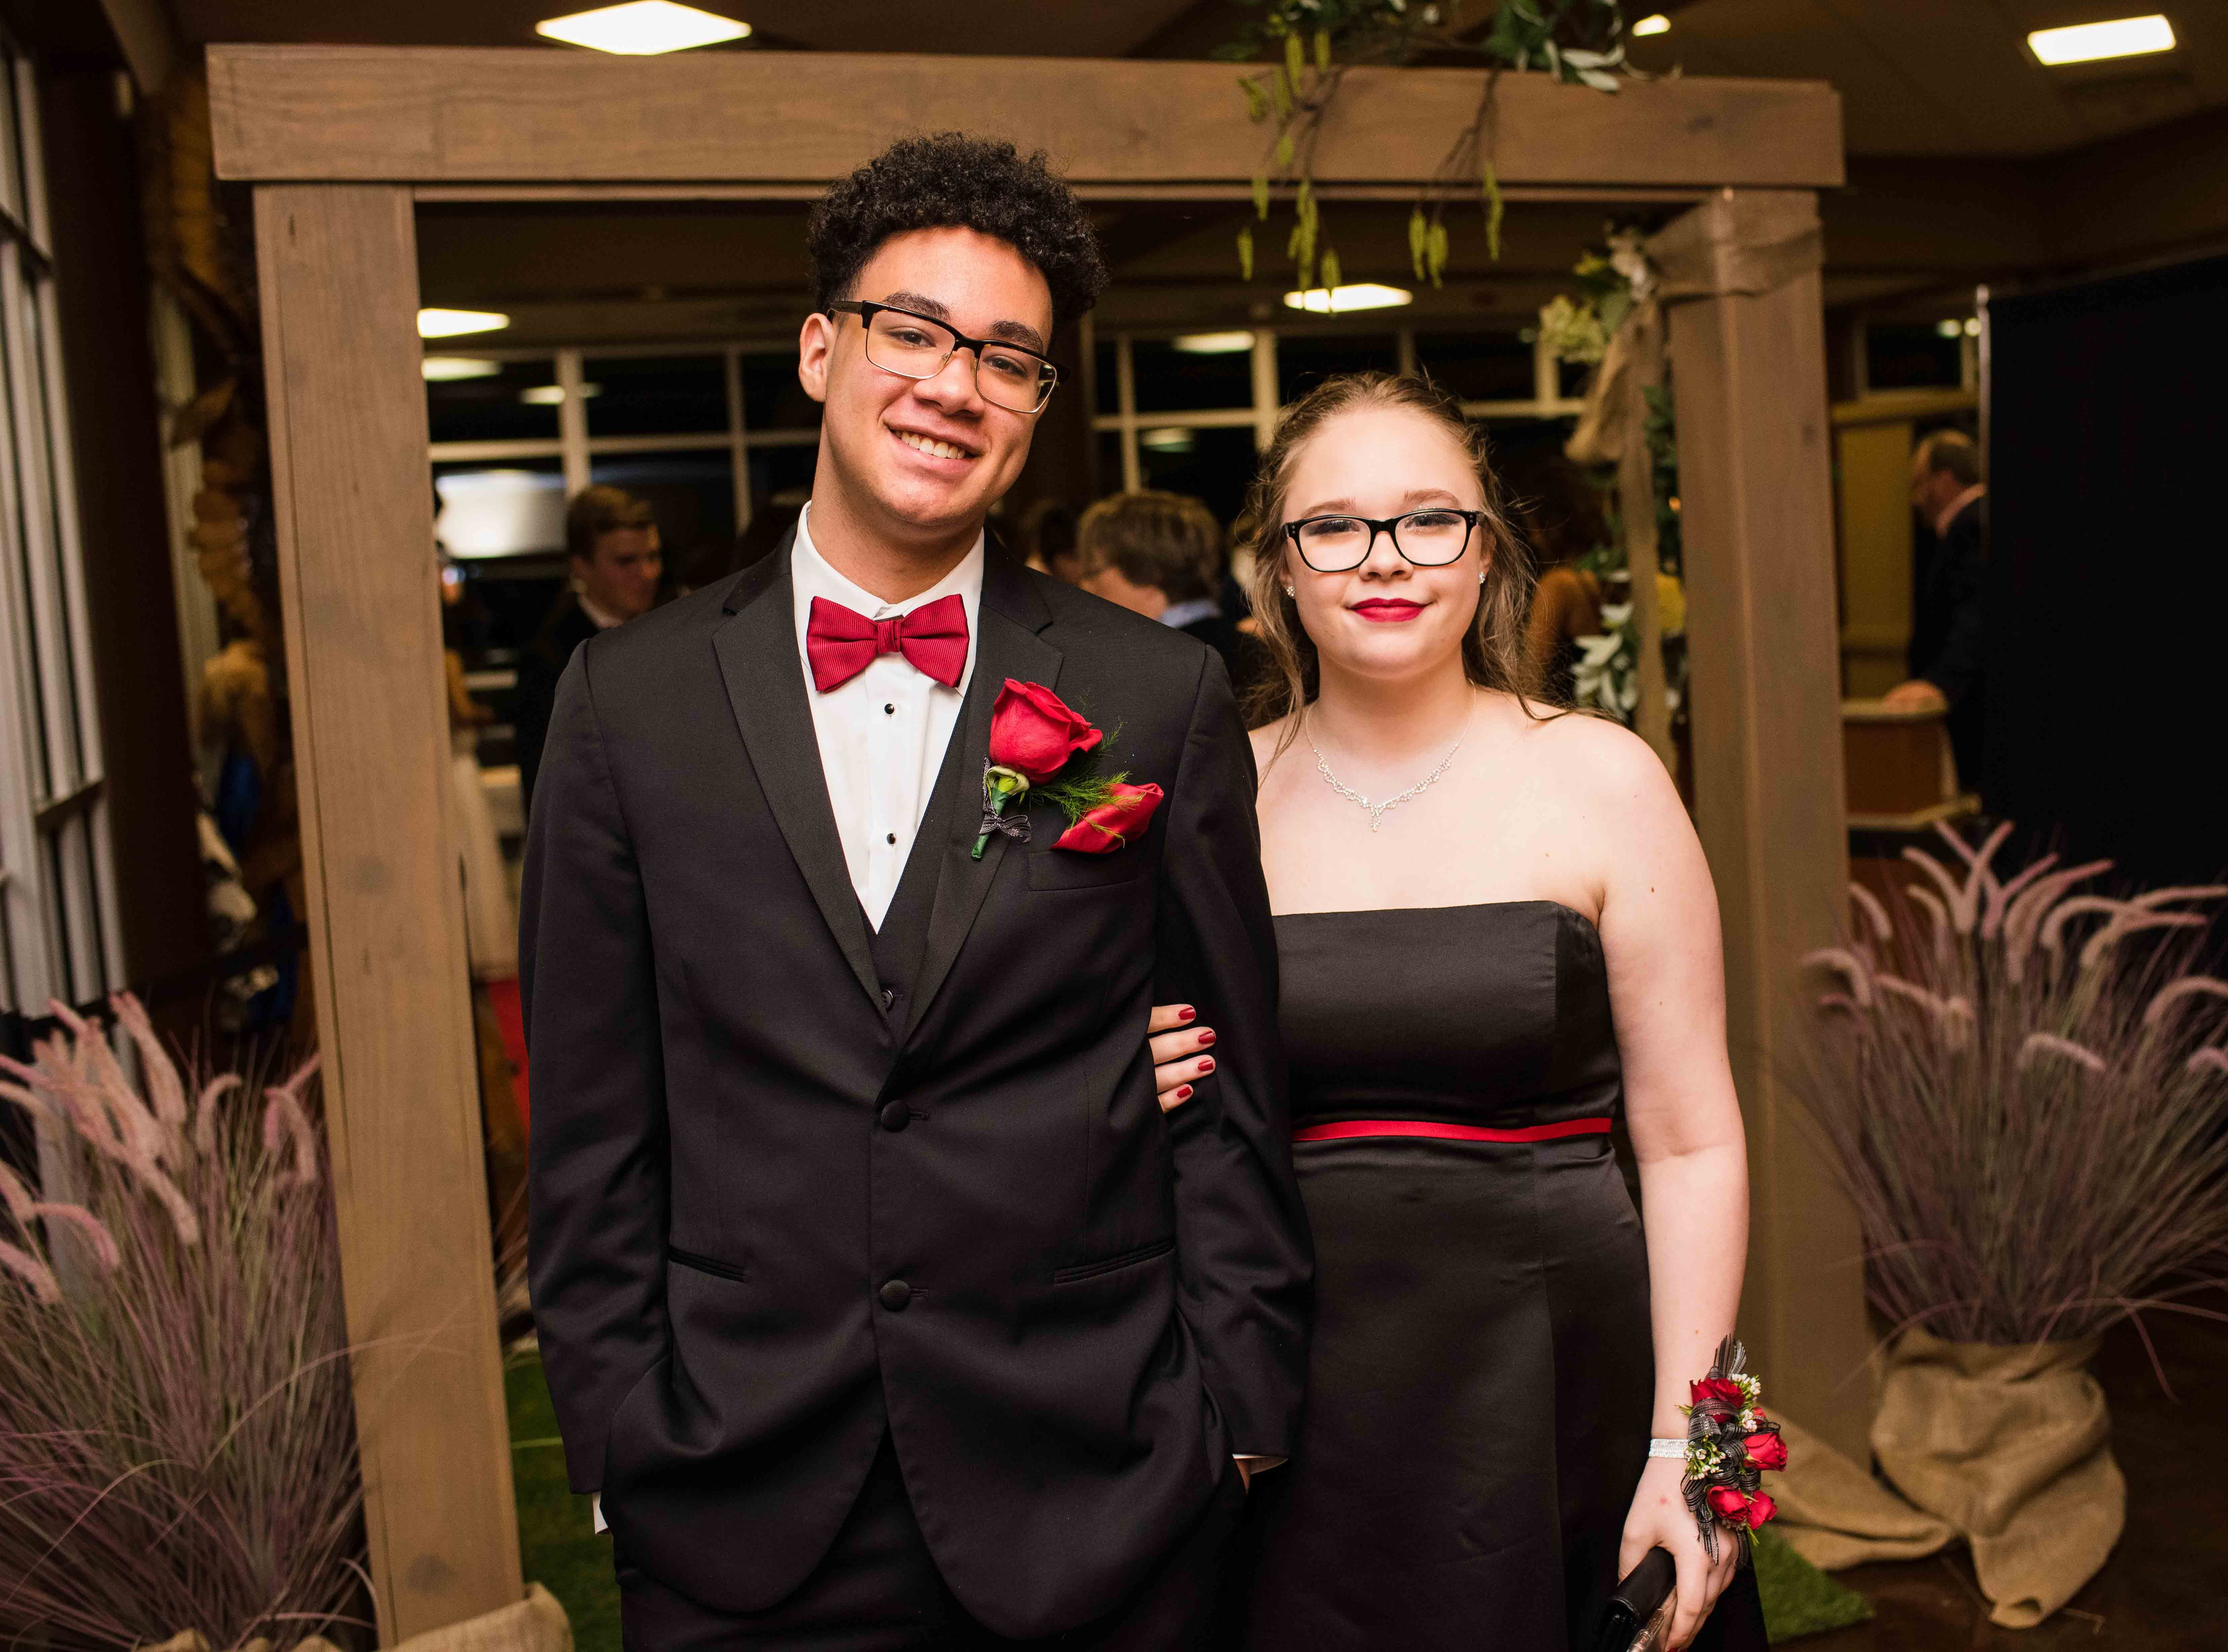 Rossview High School celebrated its 2019 prom Saturday night at Valor Hall in Oak Grove, Ky.